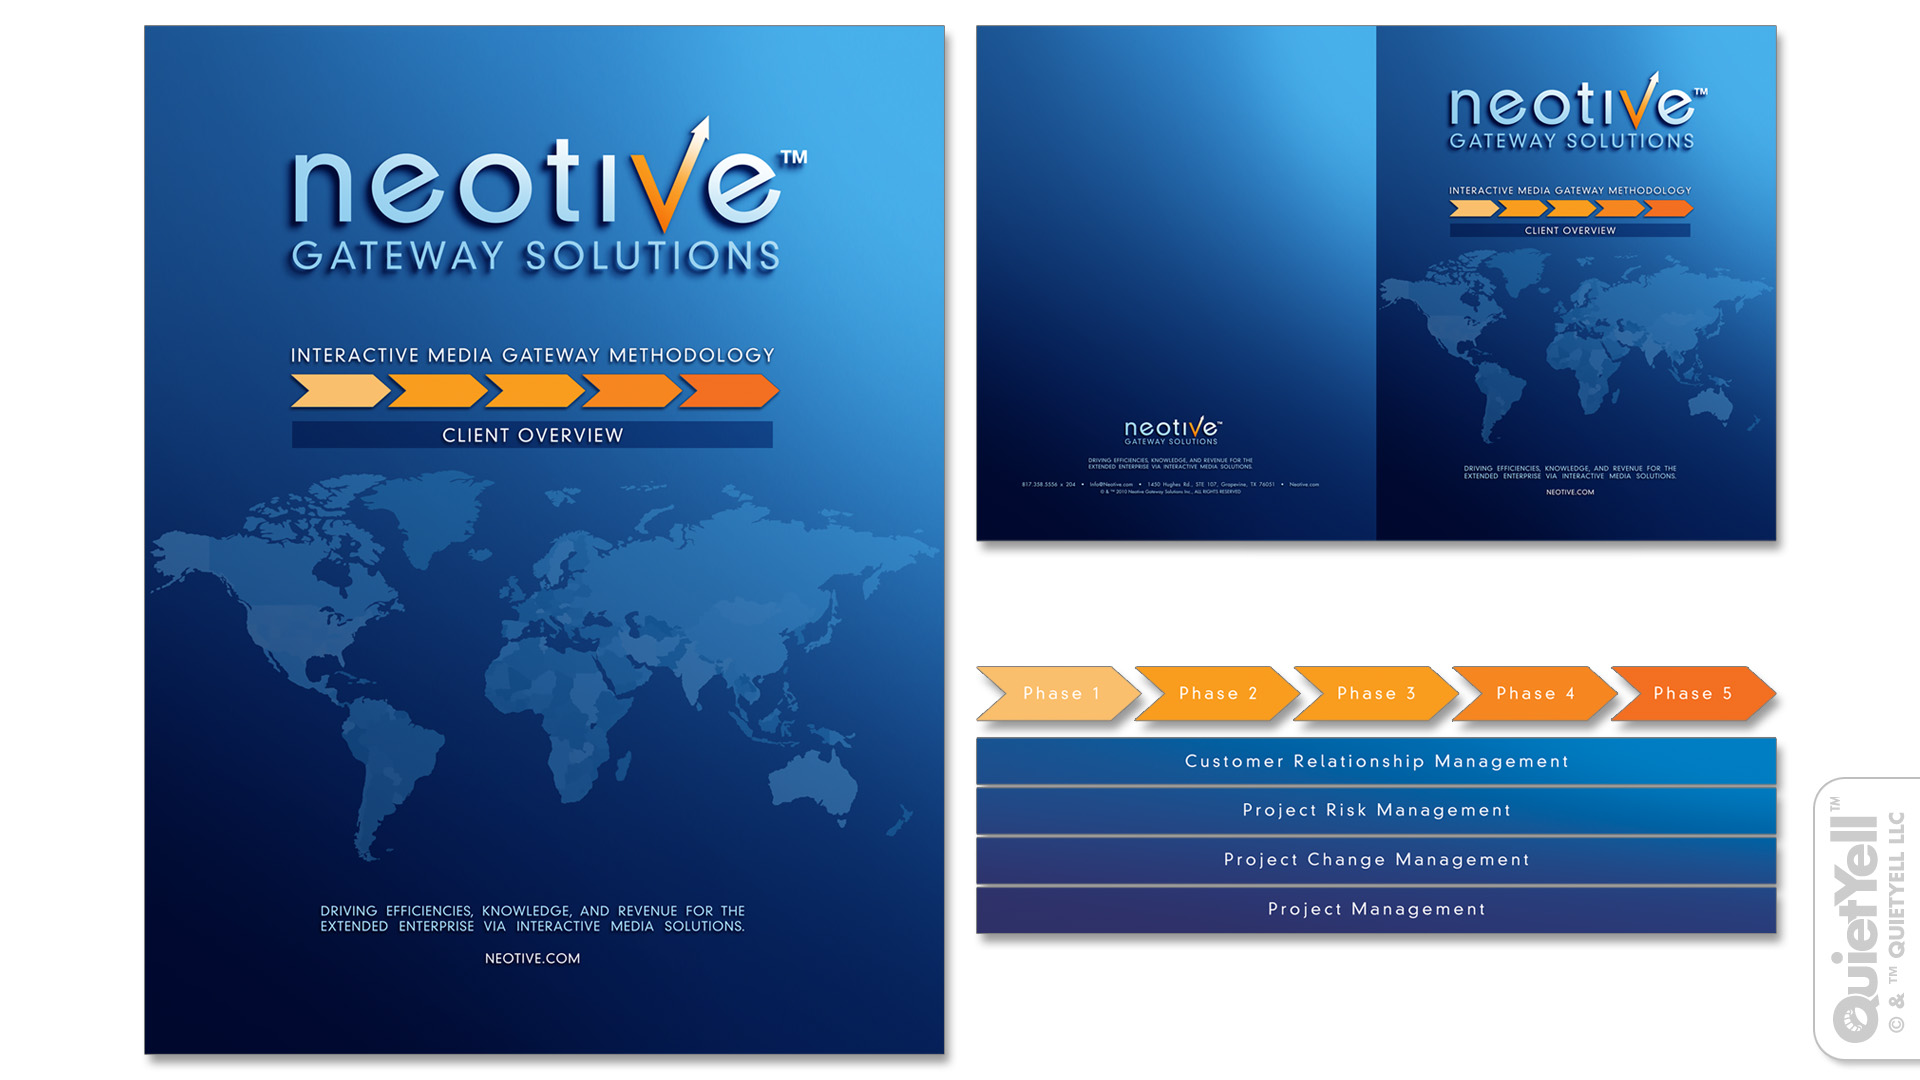 quietyell_design_full_neotive_methodology_01